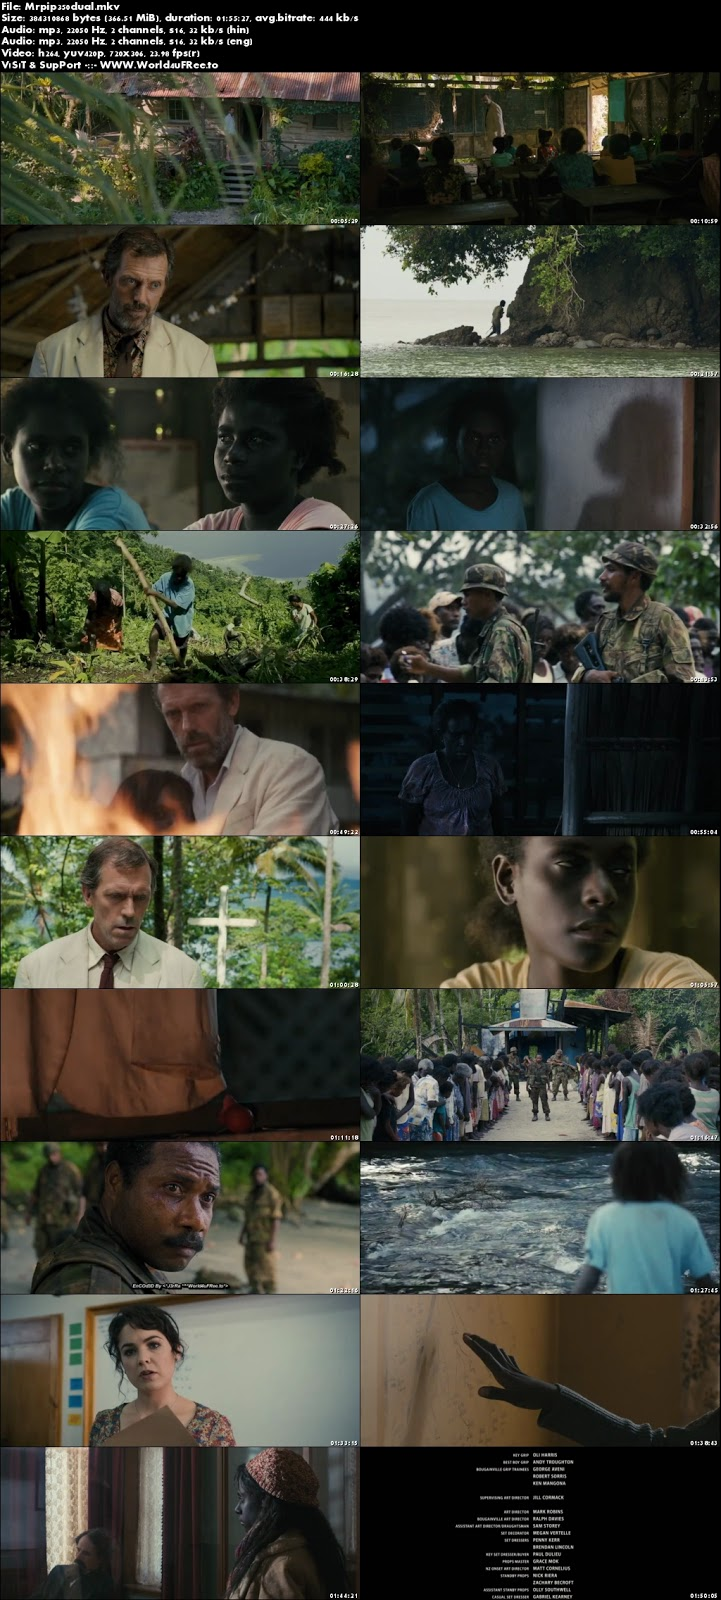 Mr. Pip 2012 Dual Audio BRRip 480p 350Mb x264 world4ufree.to hollywood movie Mr. Pip 2012 hindi dubbed dual audio 480p brrip bluray compressed small size 300mb free download or watch online at world4ufree.to